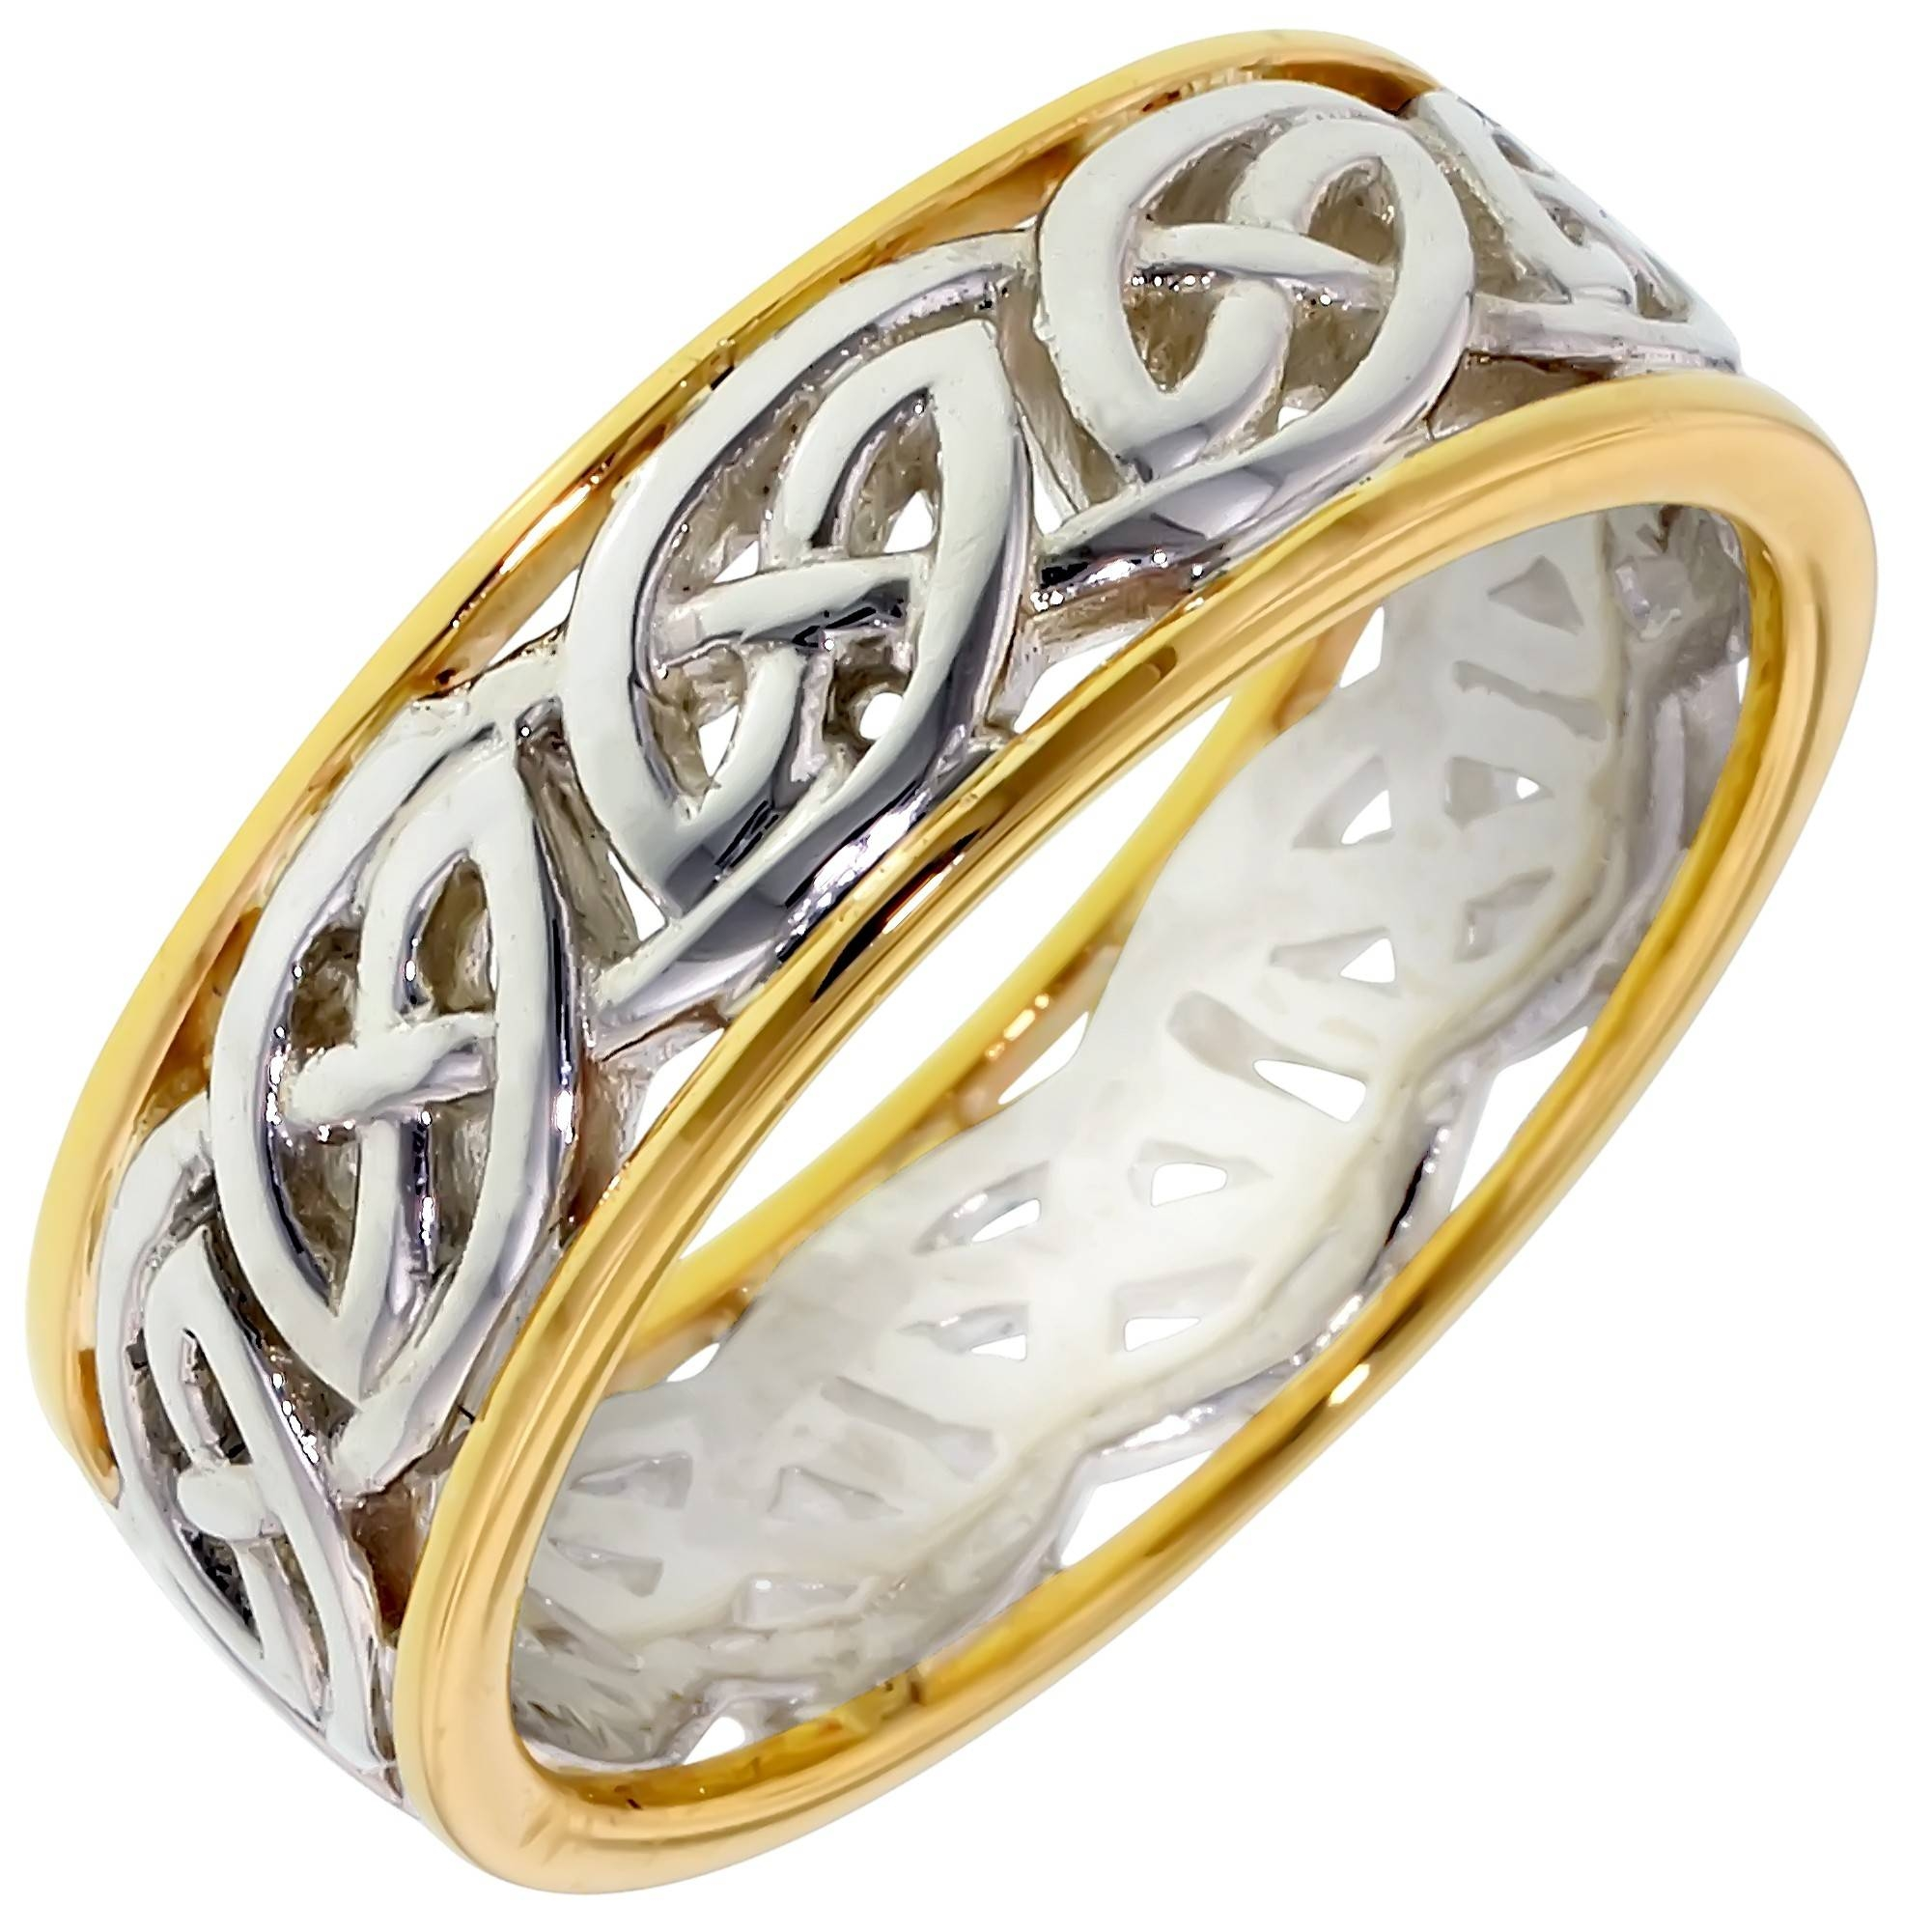 Keith Jack Window To The Soul Mens Celtic Ring In Sterling Silver Within Mens Celtic Engagement Rings (View 6 of 15)